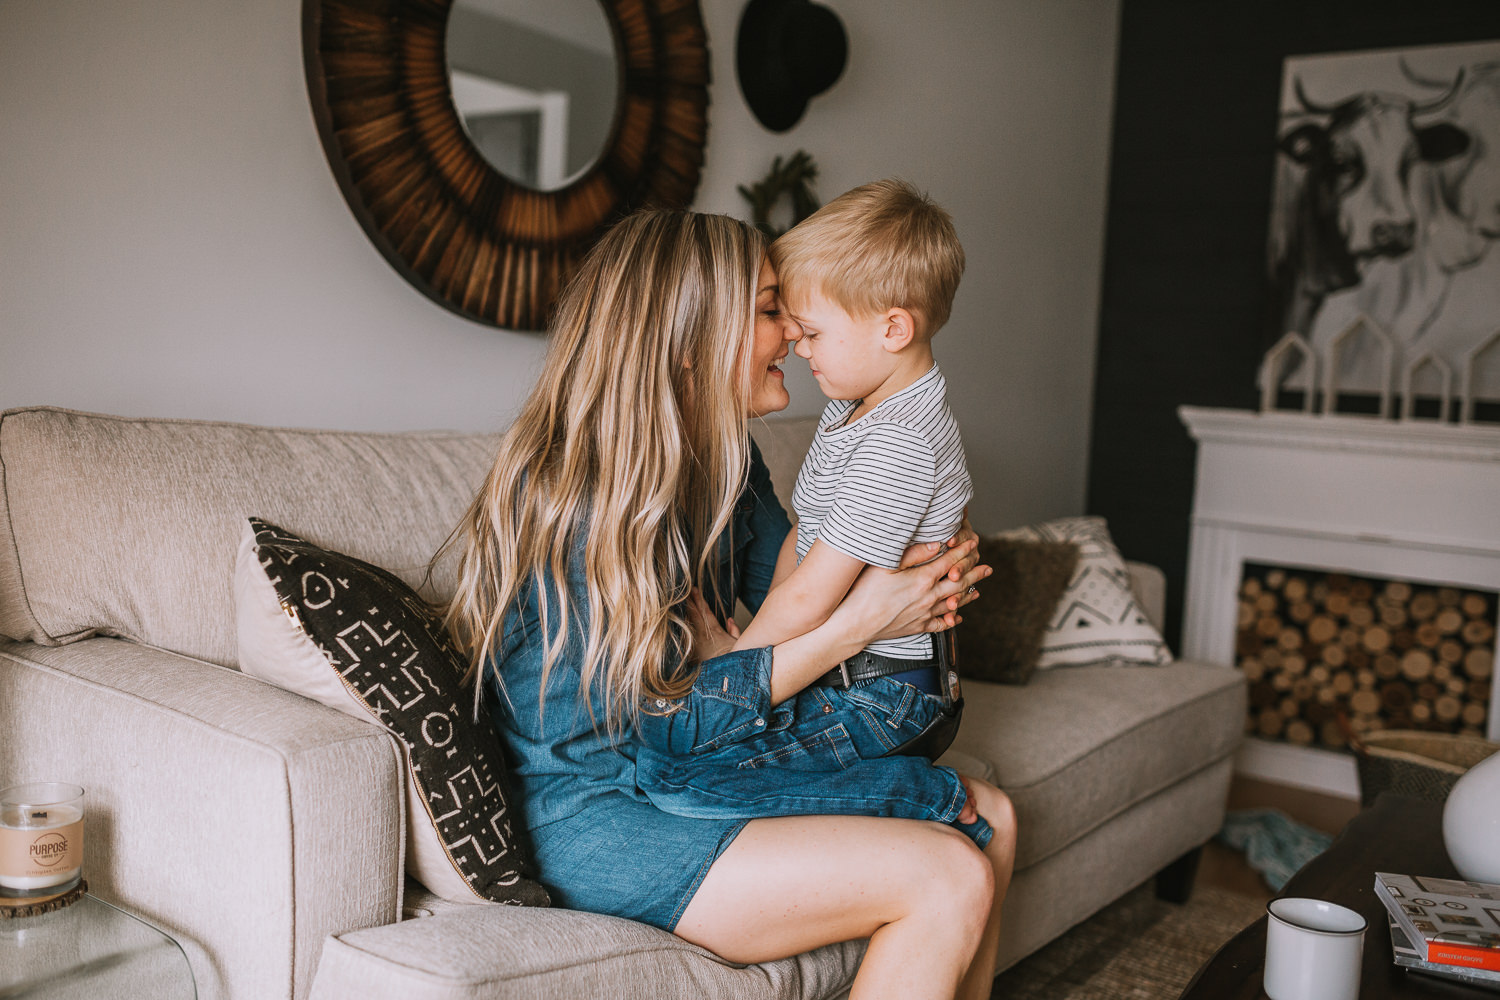 mom with long blonde hair holds 4 year old son in lap touching foreheads - Stouffville child photography